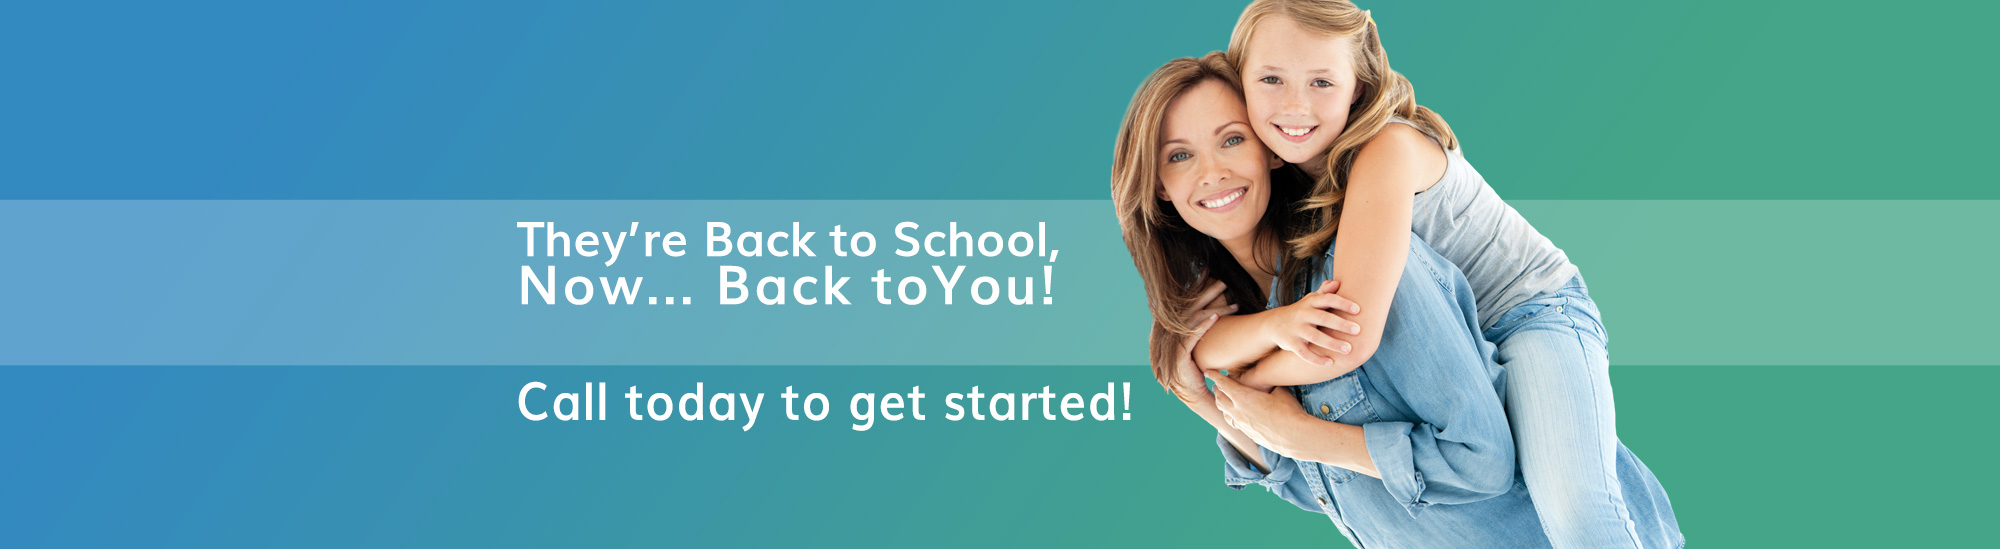 The kids are back to school - now back to a nuYou - weight loss and medi spa services.